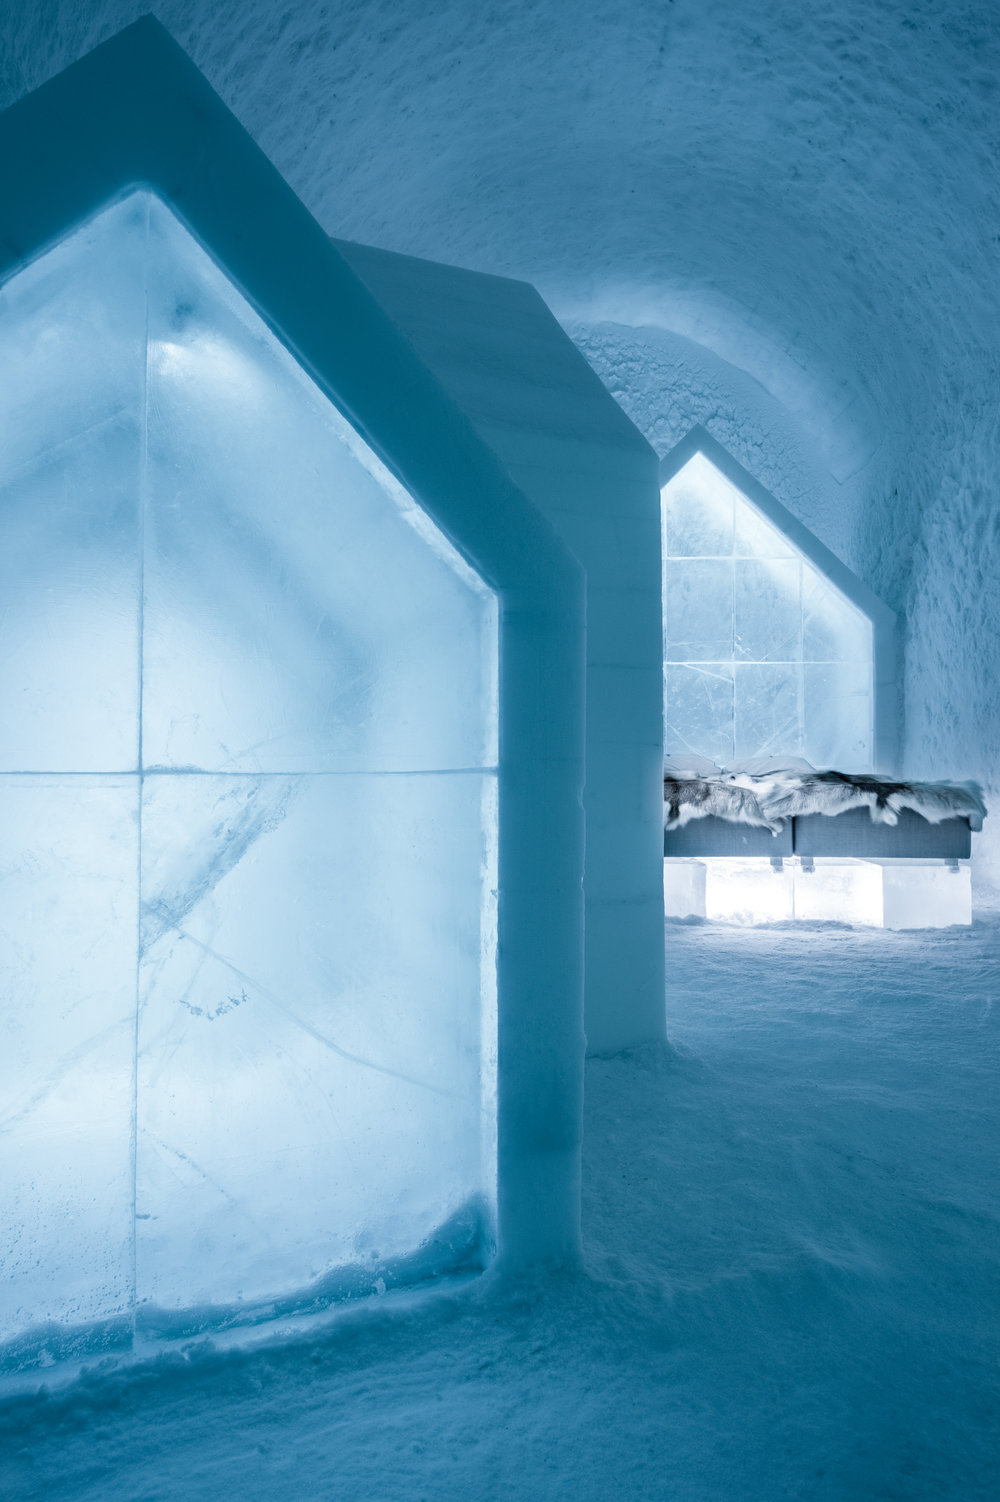 Johan & Nina Kauppi, Blue Houses--ICEHOTEL 365 photo by - Asaf Kliger (3 of 4) (1 of 1).jpg